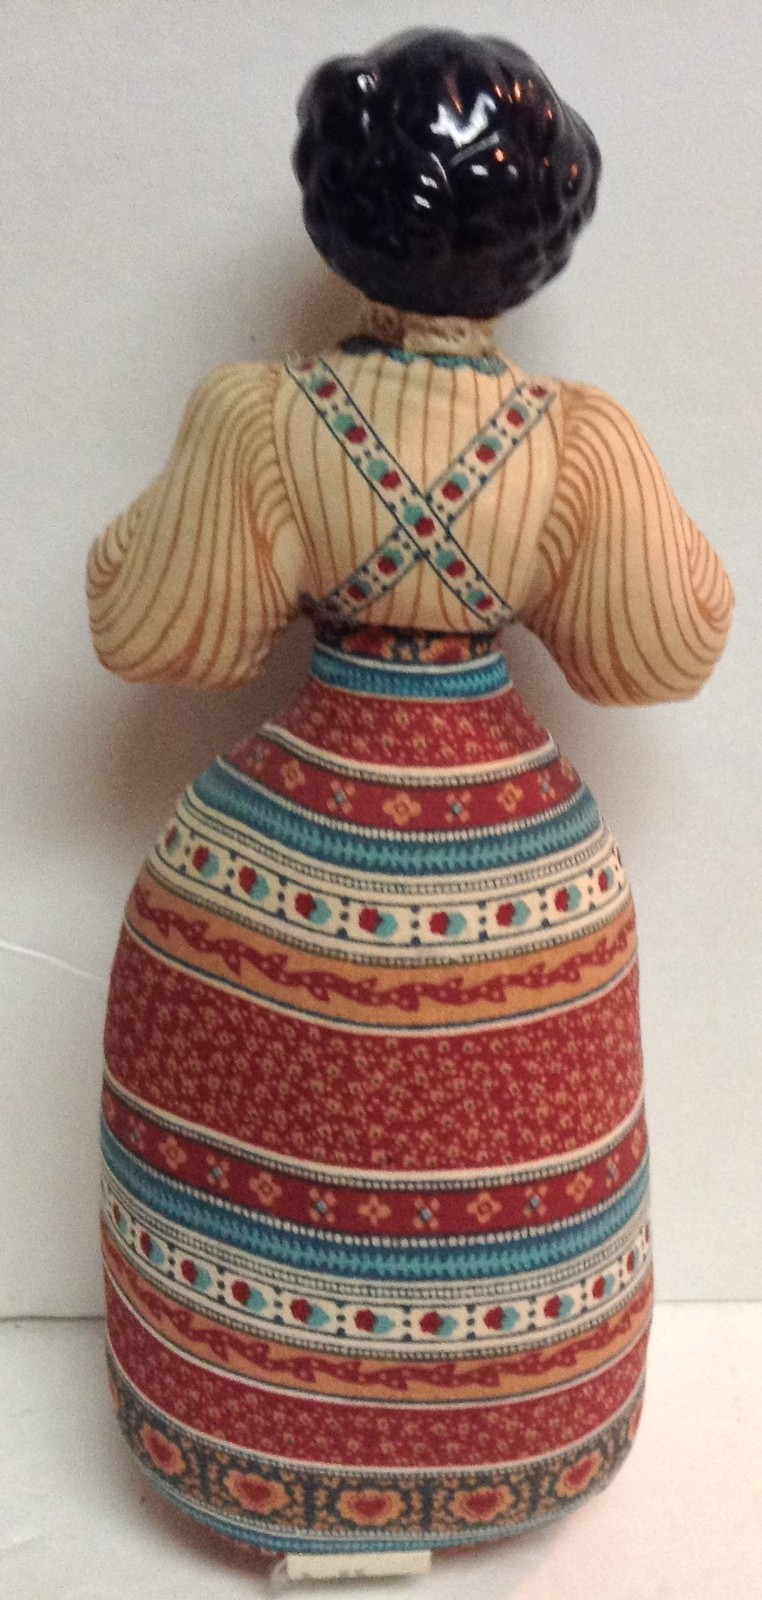 Avon American Heirloom China Head Fabric Body 1981 Doll